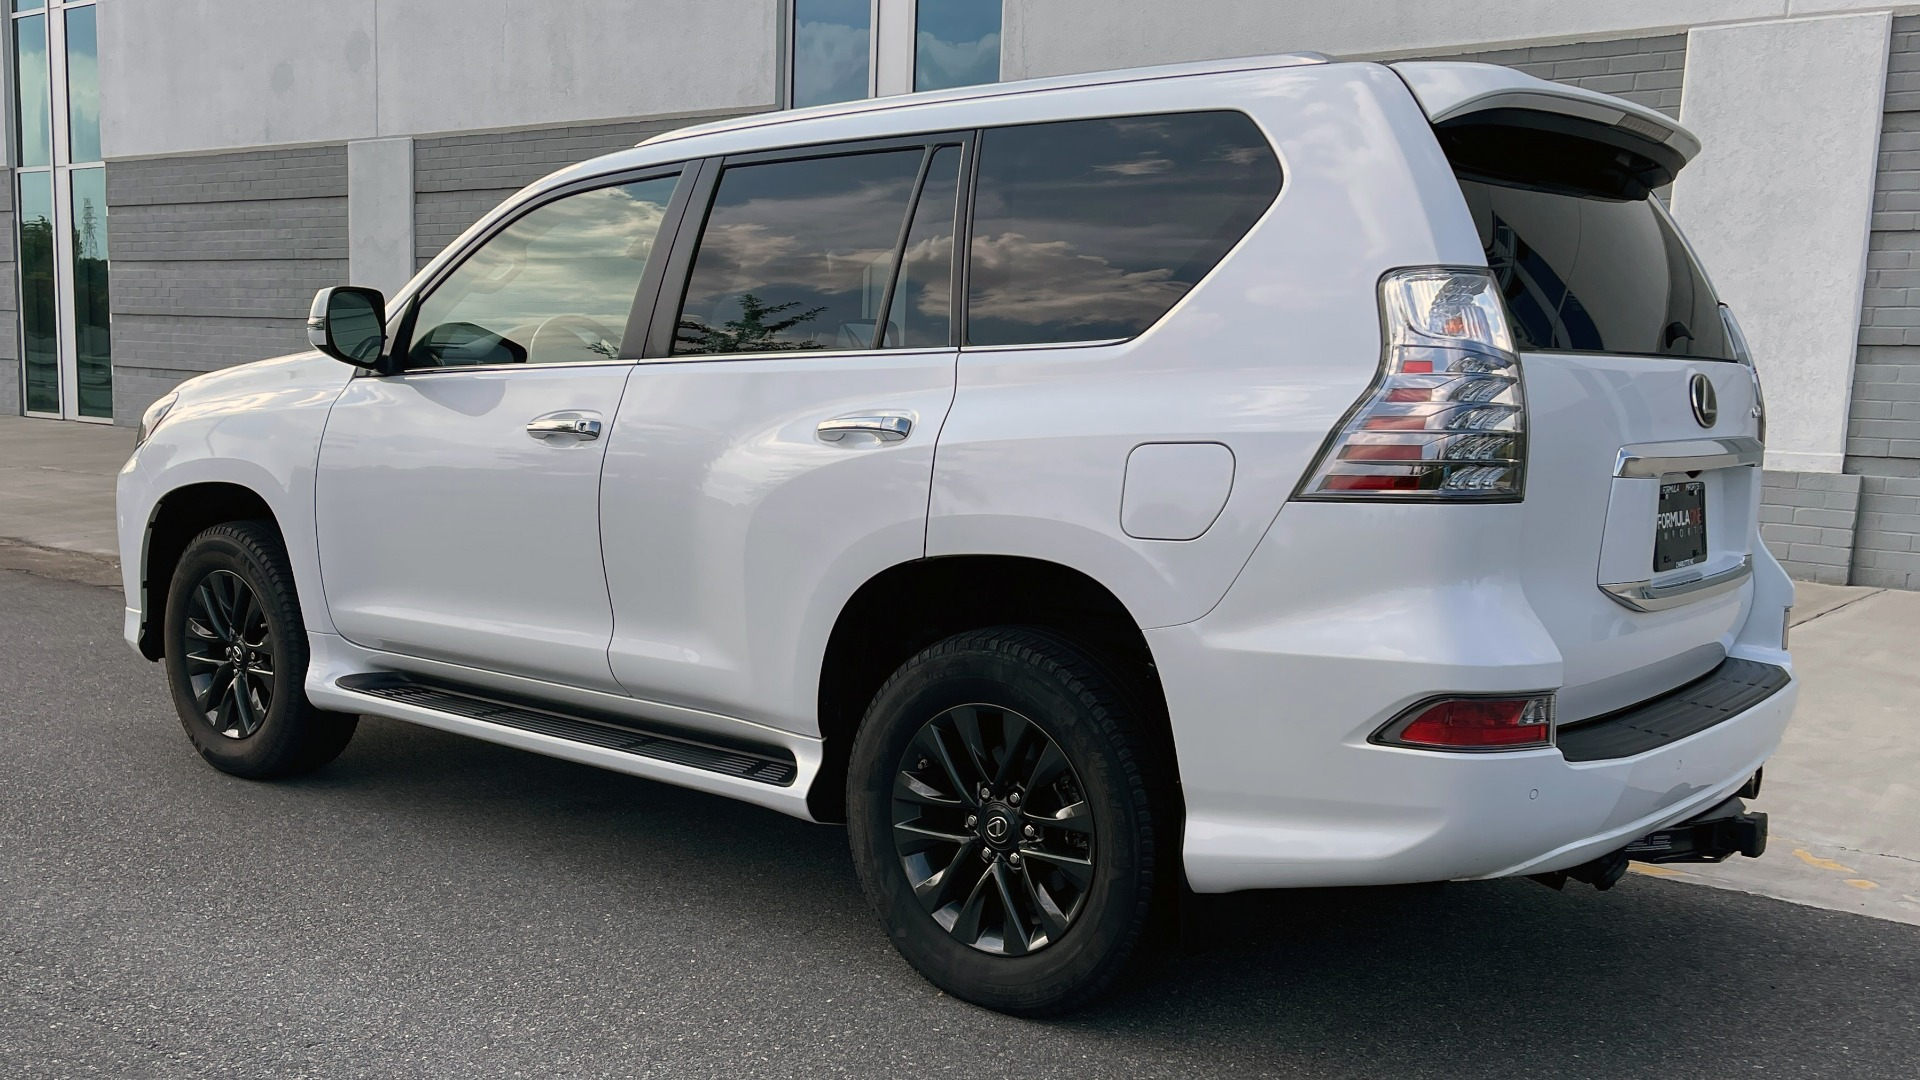 Used 2020 Lexus GX 460 PREMIUM / AWD / NAV / SUNROOF / 3-ROW / REARVIEW for sale $54,495 at Formula Imports in Charlotte NC 28227 5